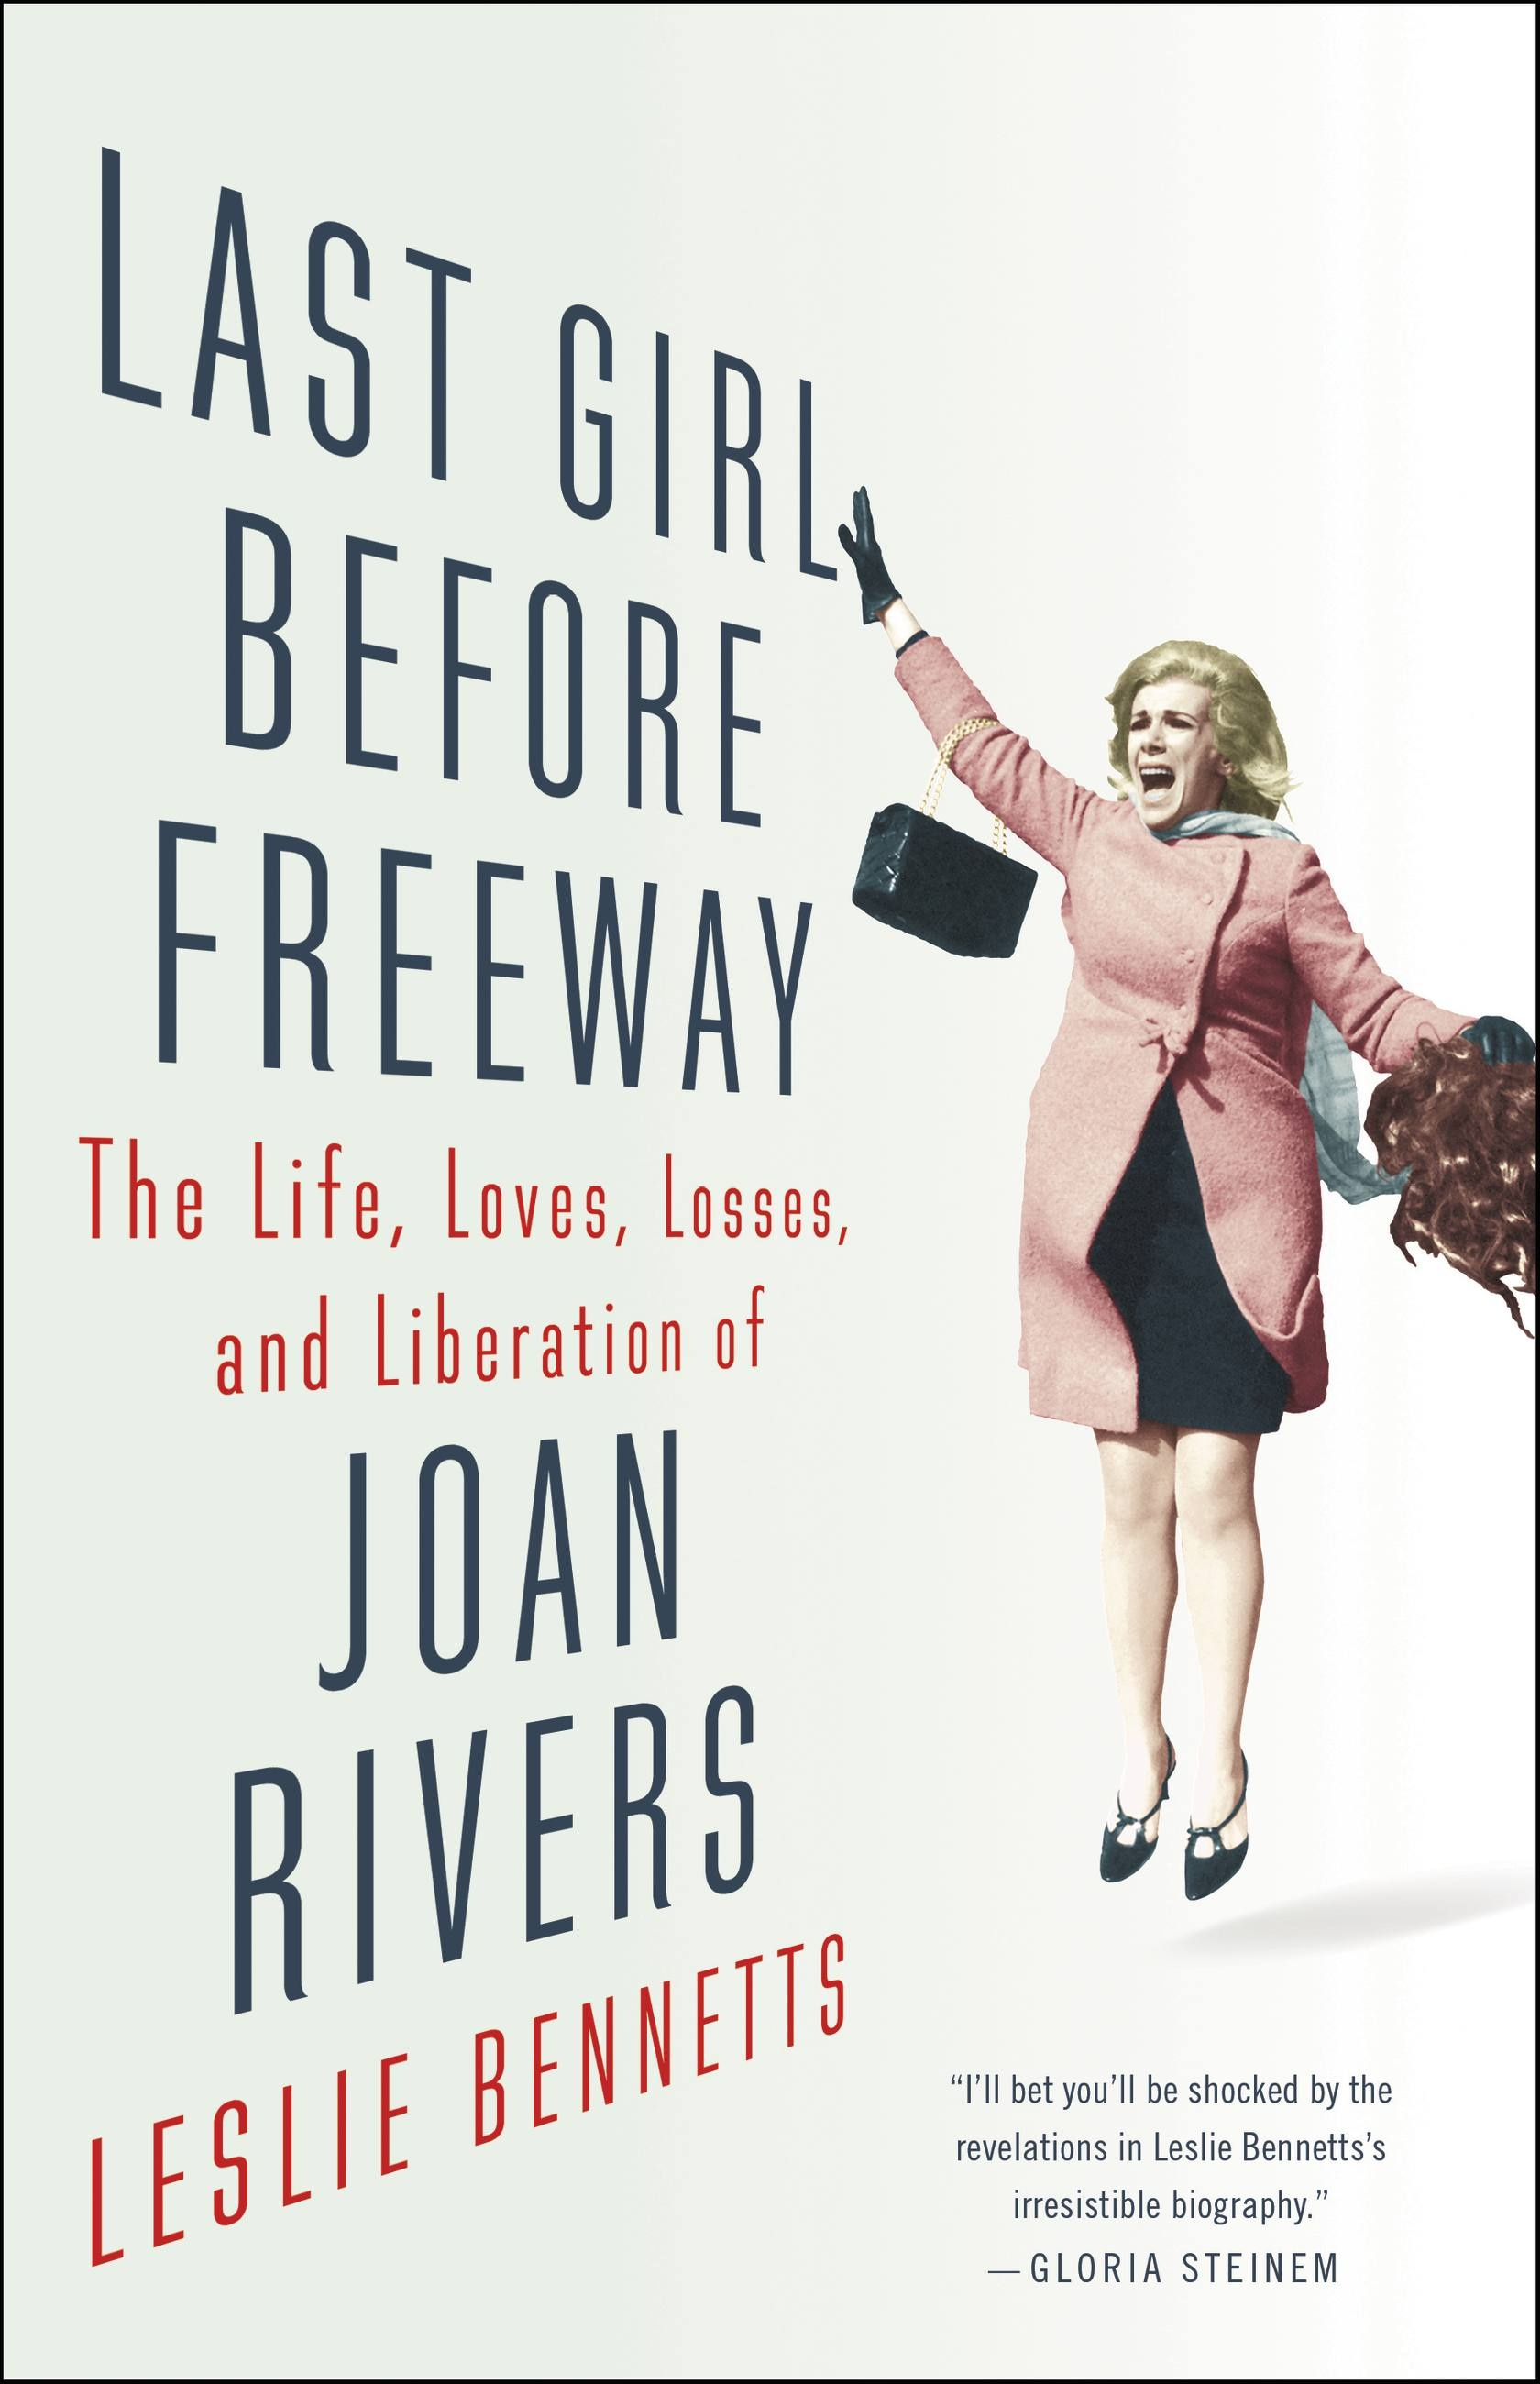 calling and charisma the life of joan The facts of life, the facts of life when your books are what you're there about but looks are what you care about, the time is right to learn the facts of life.